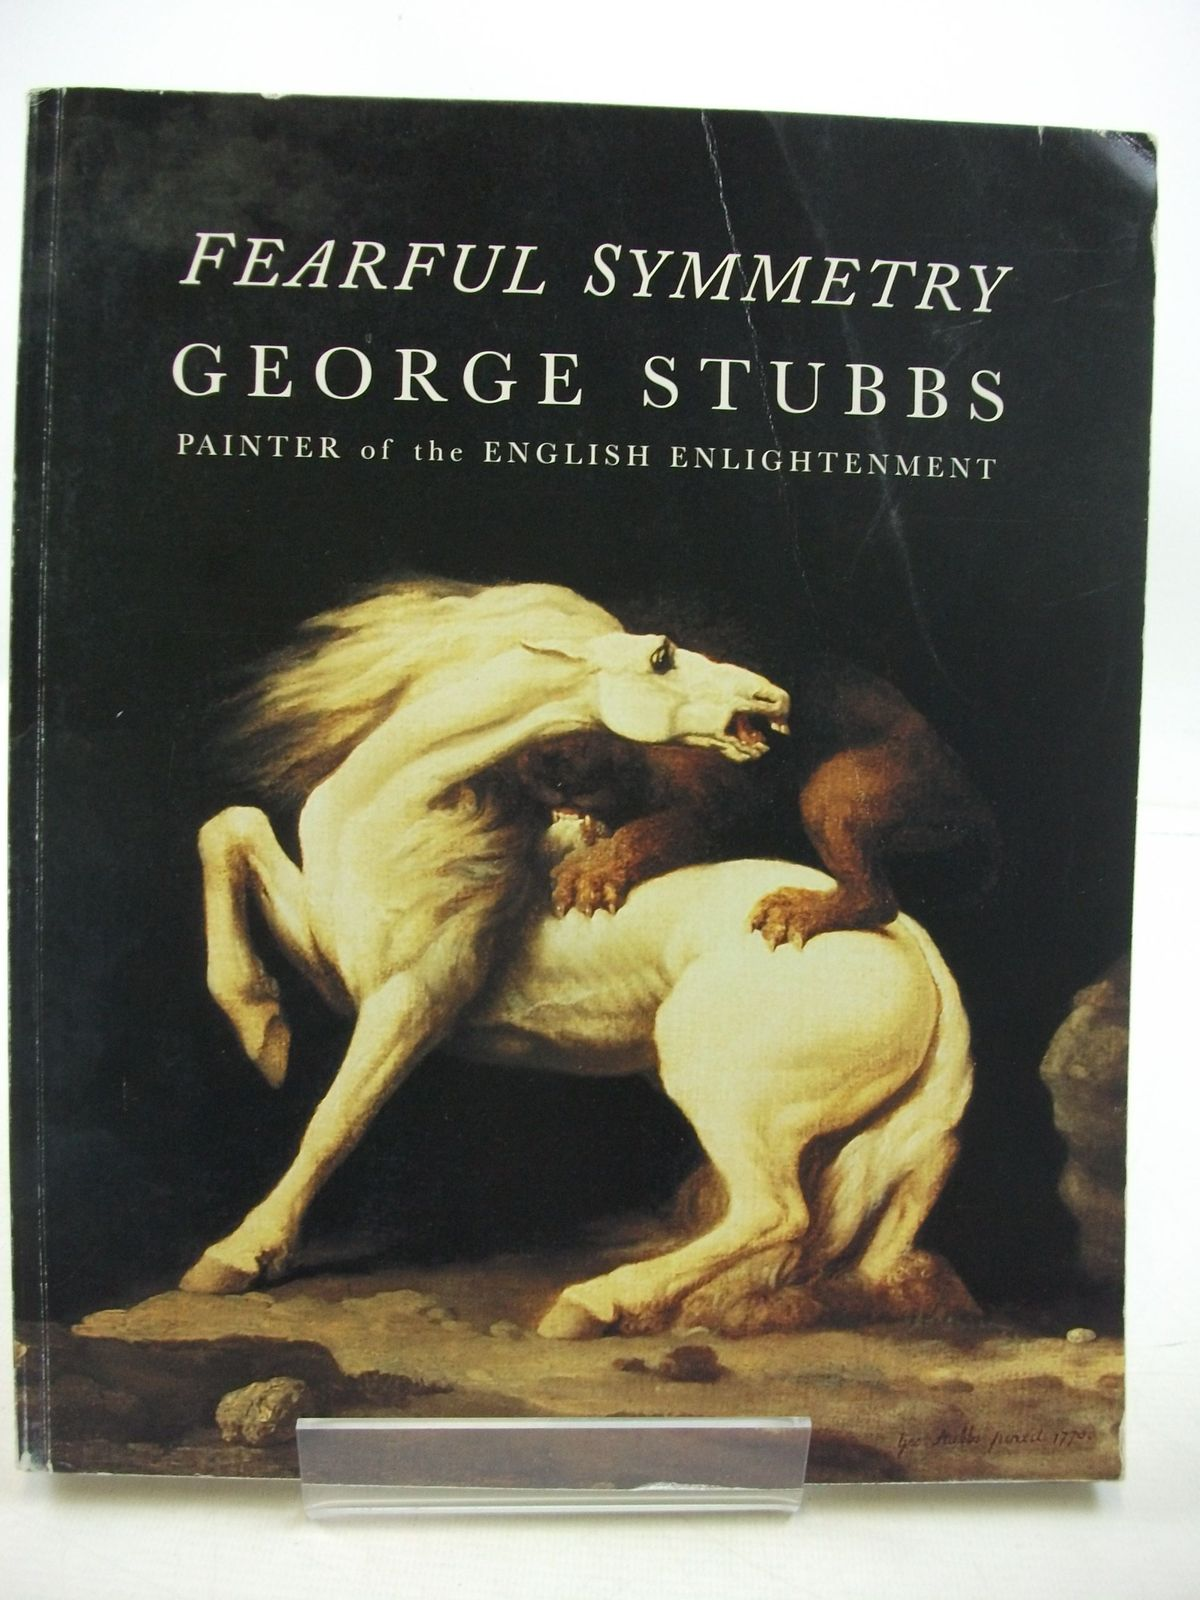 Photo of FEARFUL SYMMETRY GEORGE STUBBS PAINTER OF THE ENGLISH ENLIGHTENMENT